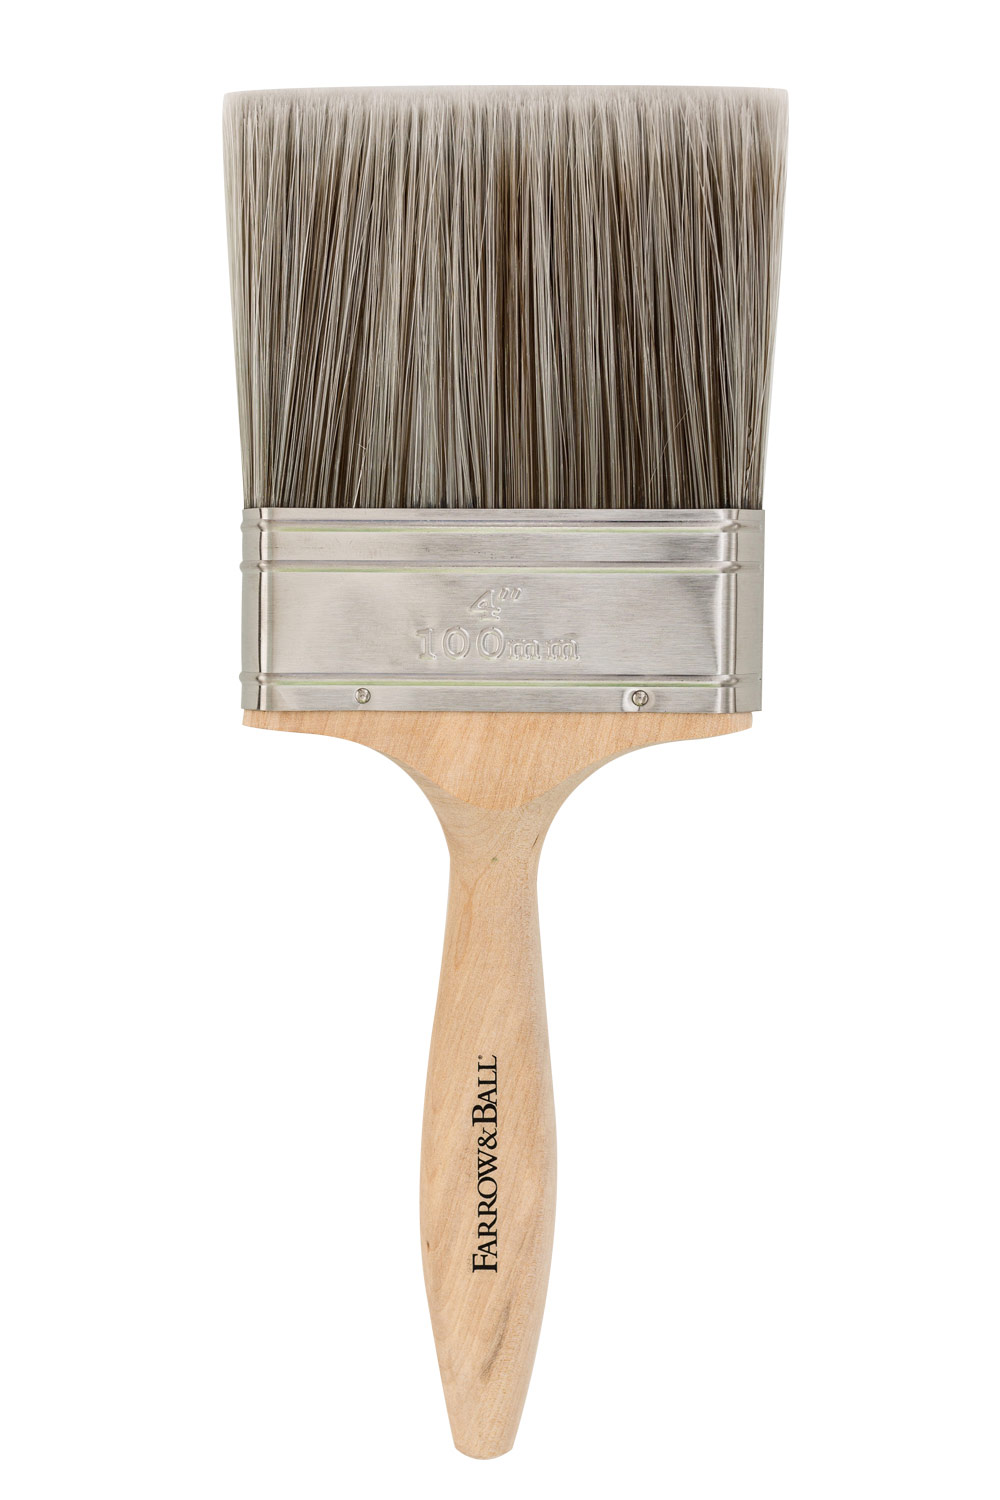 4 Inch Paint Brush $21.00  Order Now